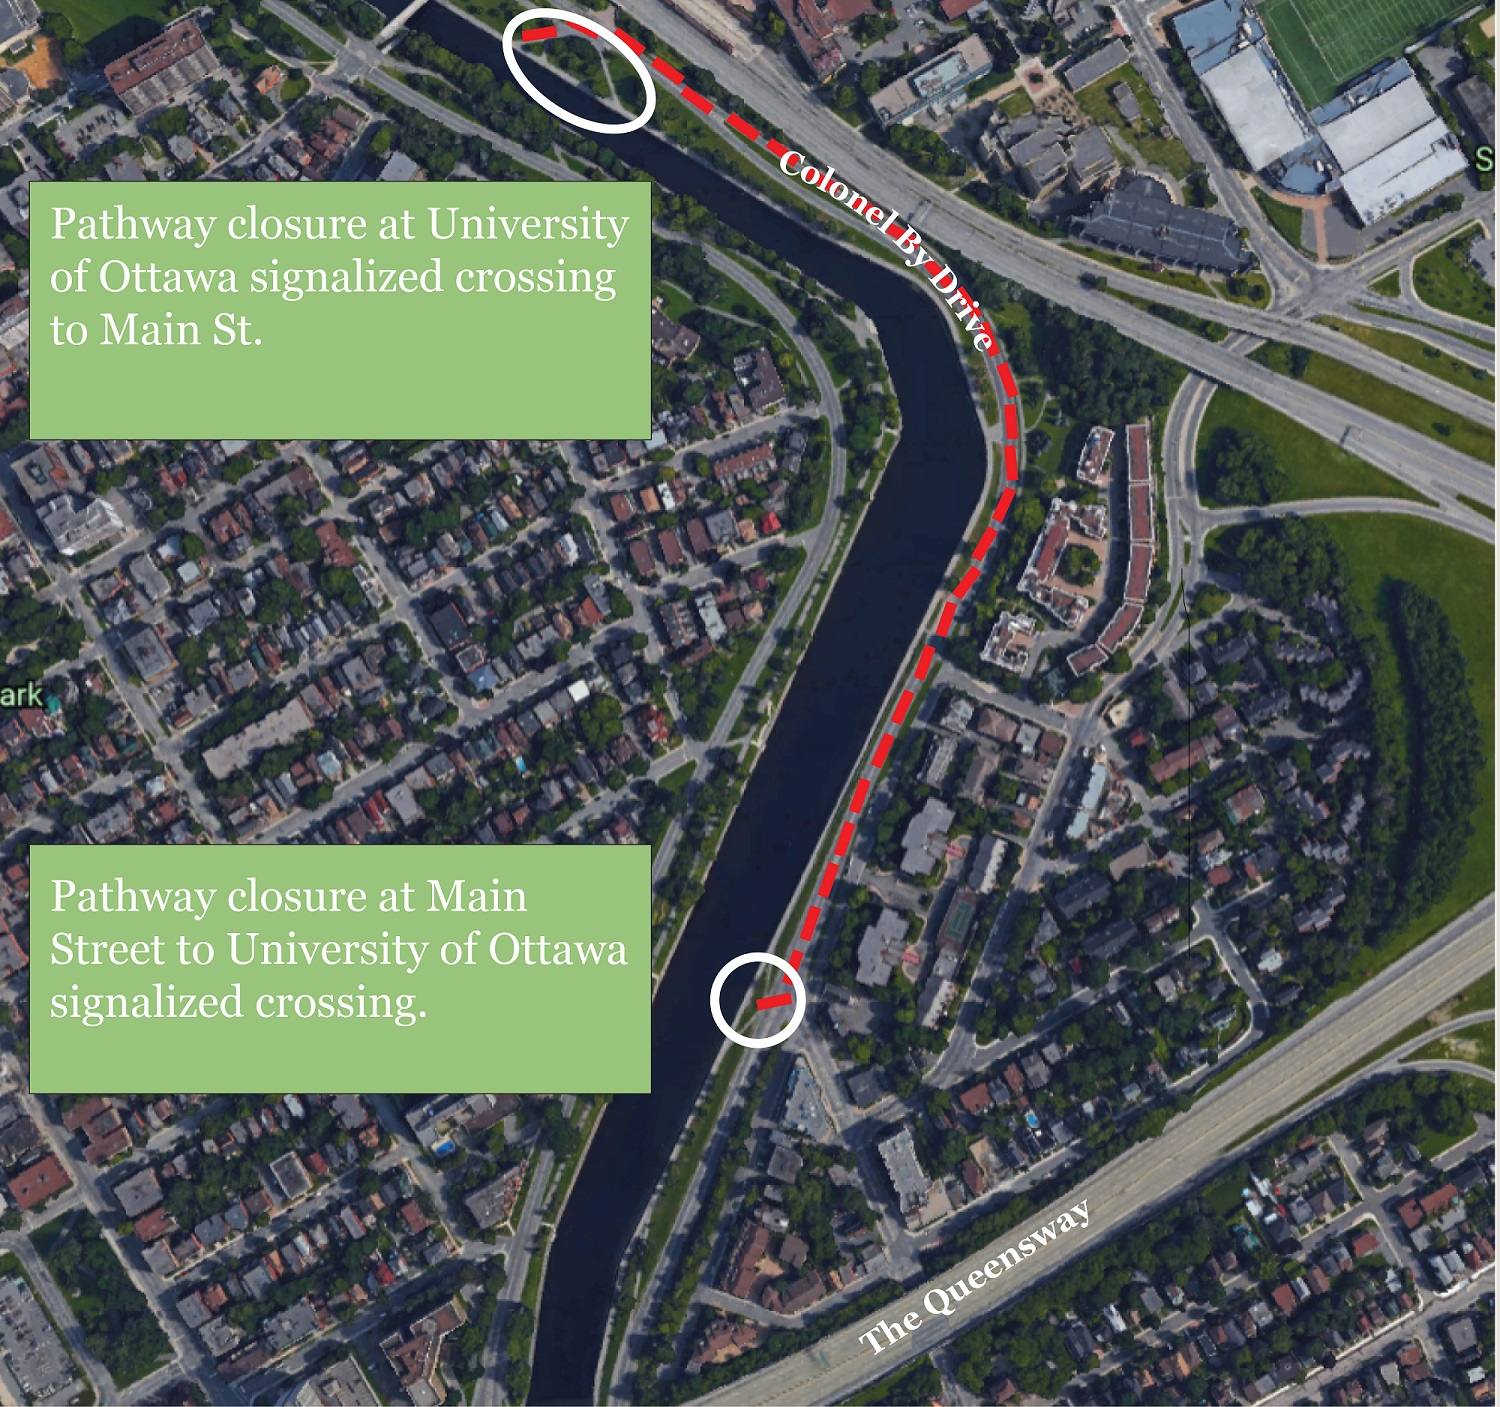 Map of pathway detours along Rideau Canal pathway between Concord Street North and Main Street